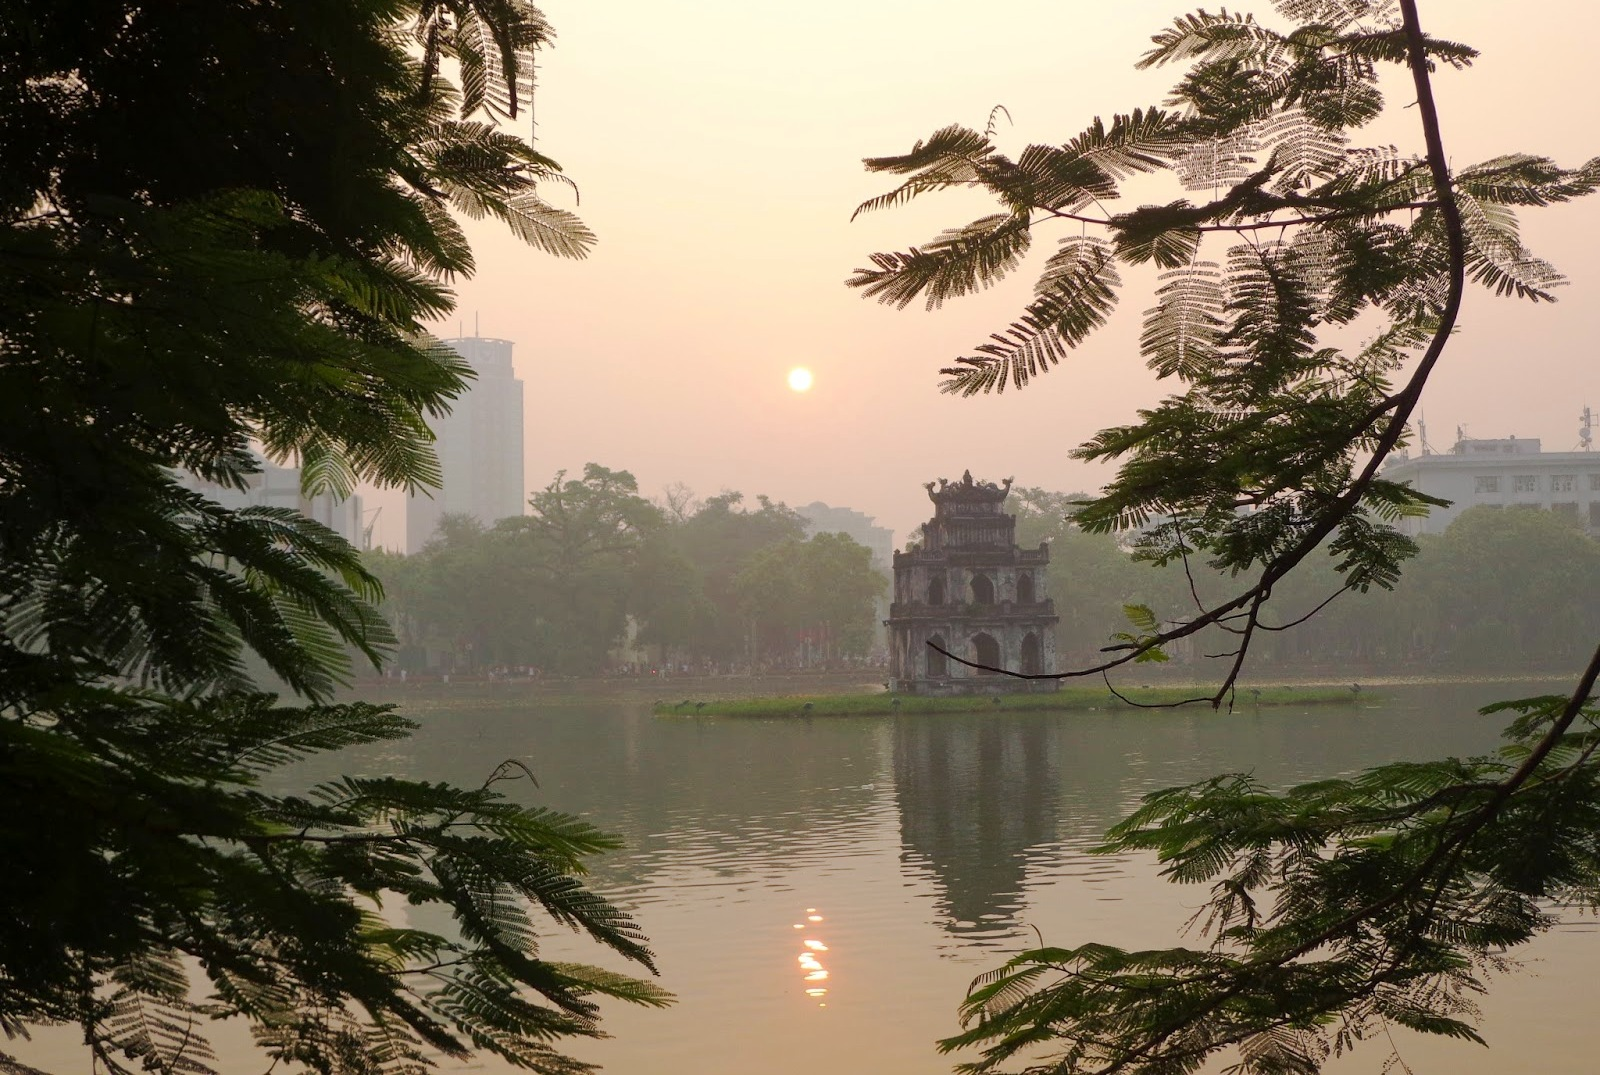 sunrise in Hanoi 2